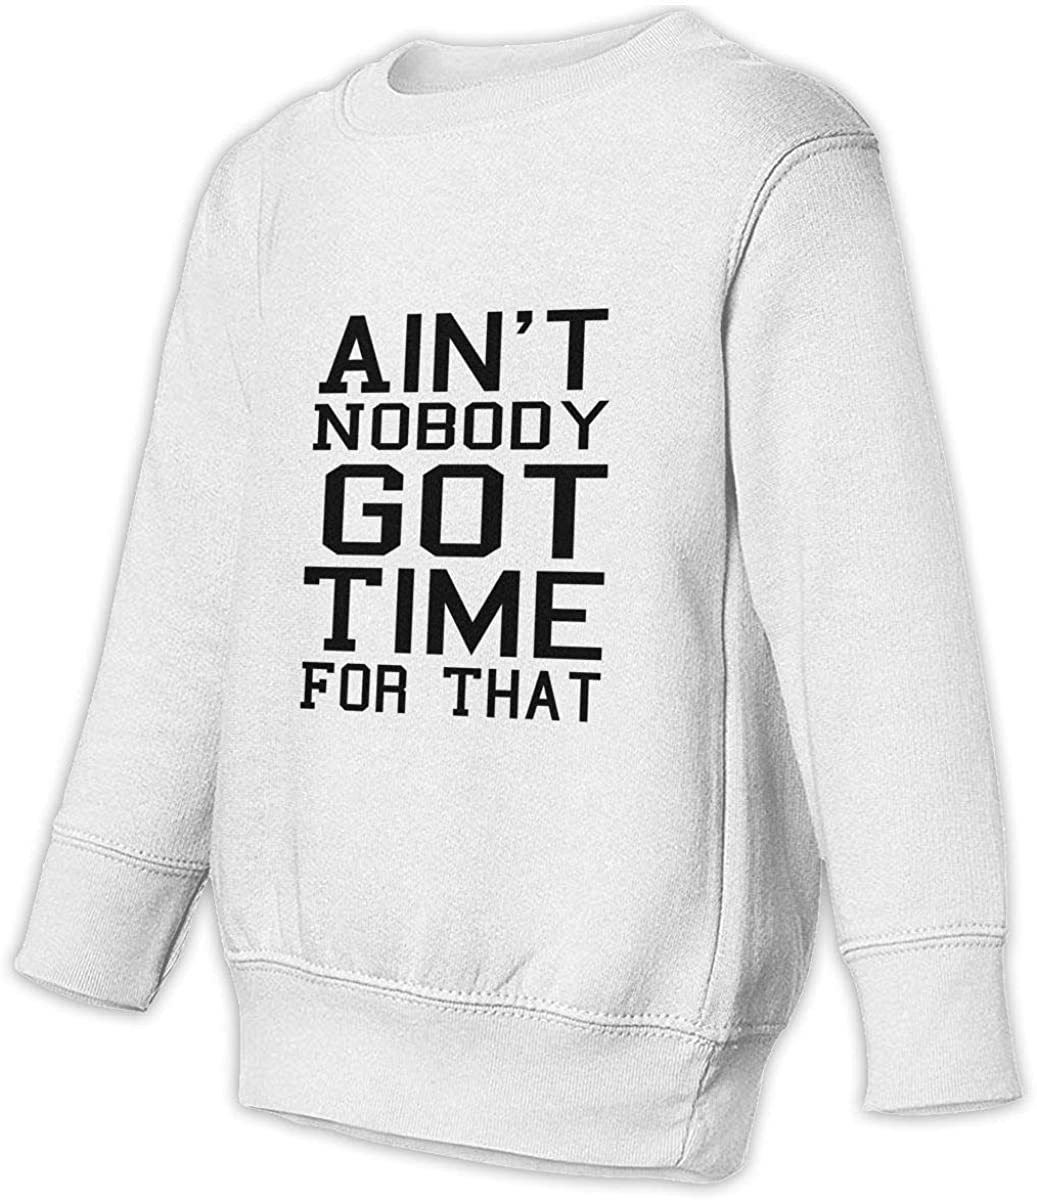 wudici Aint Nobody Got Time for That Boys Girls Pullover Sweaters Crewneck Sweatshirts Clothes for 2-6 Years Old Children